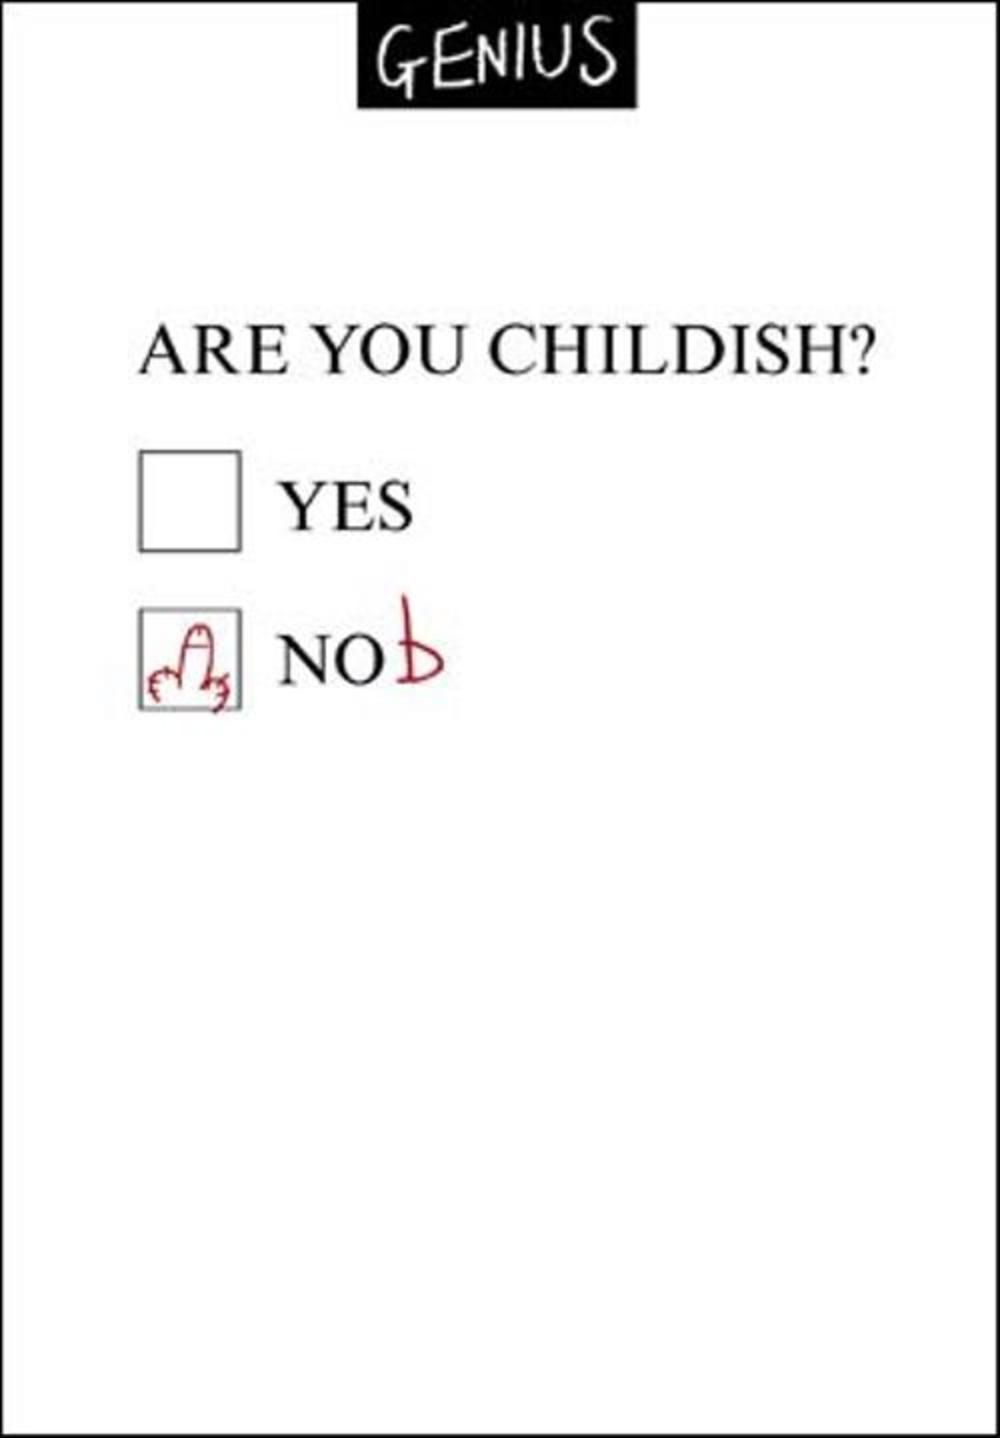 Are You Childish? Funny Genius Greeting Card